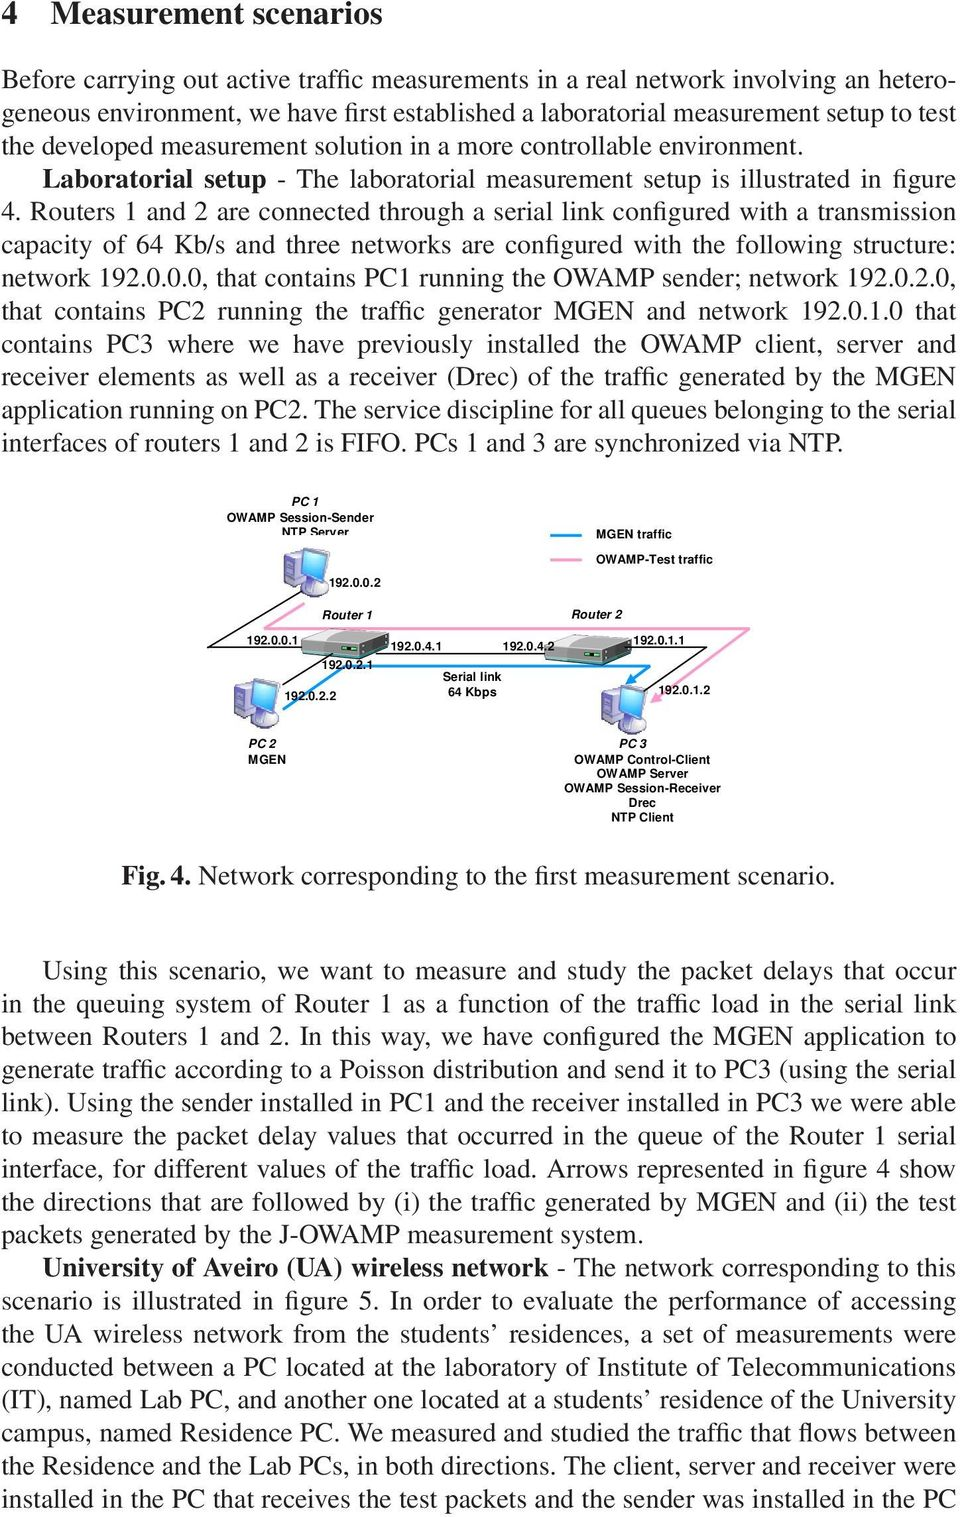 Routers 1 and 2 are connected through a serial link configured with a transmission capacity of 64 Kb/s and three networks are configured with the following structure: network 192.0.